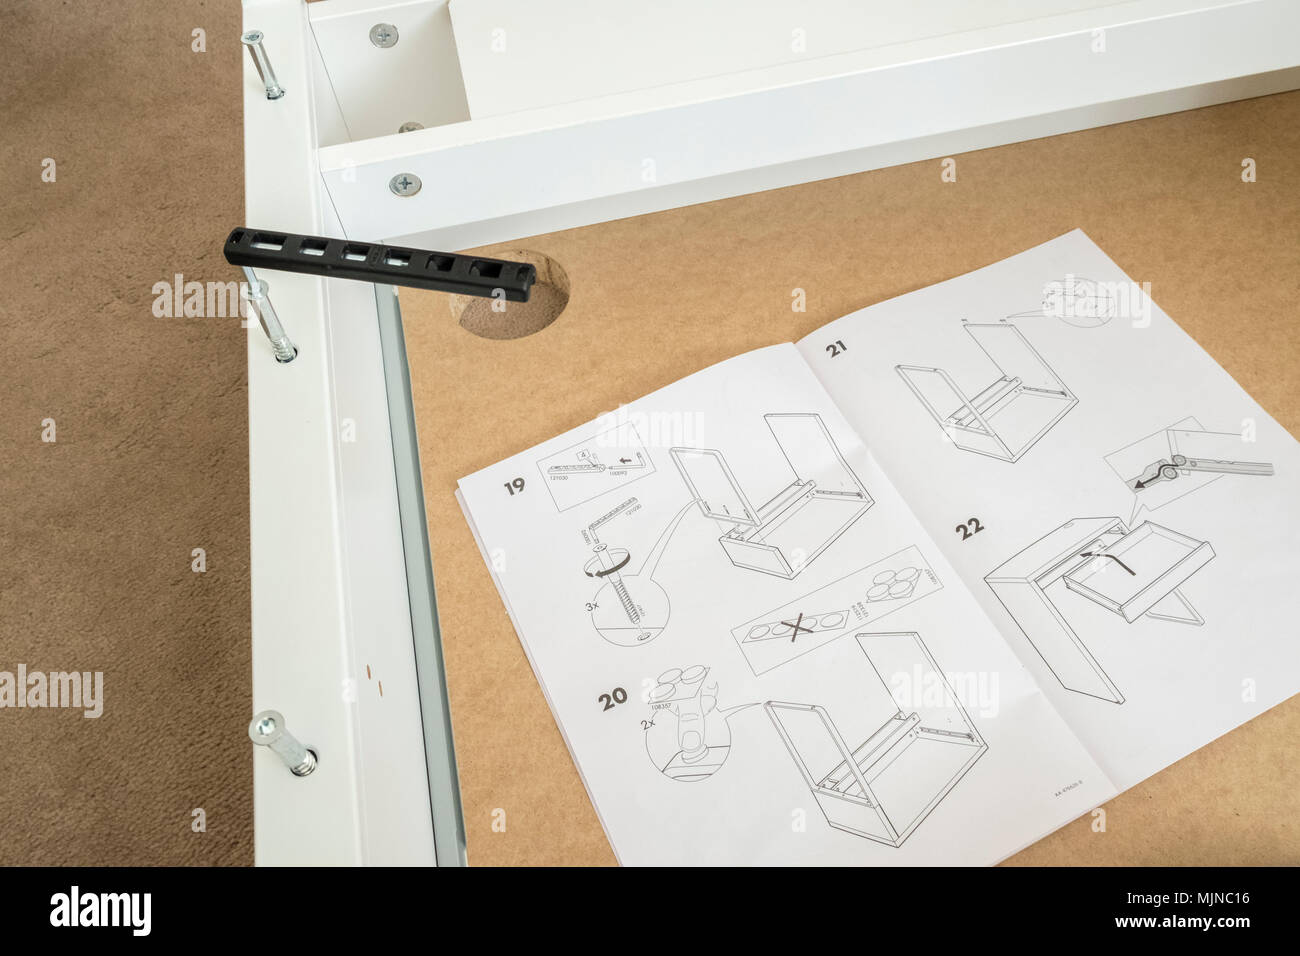 Ikea self assembly furniture instructions and supplied tool - Stock Image